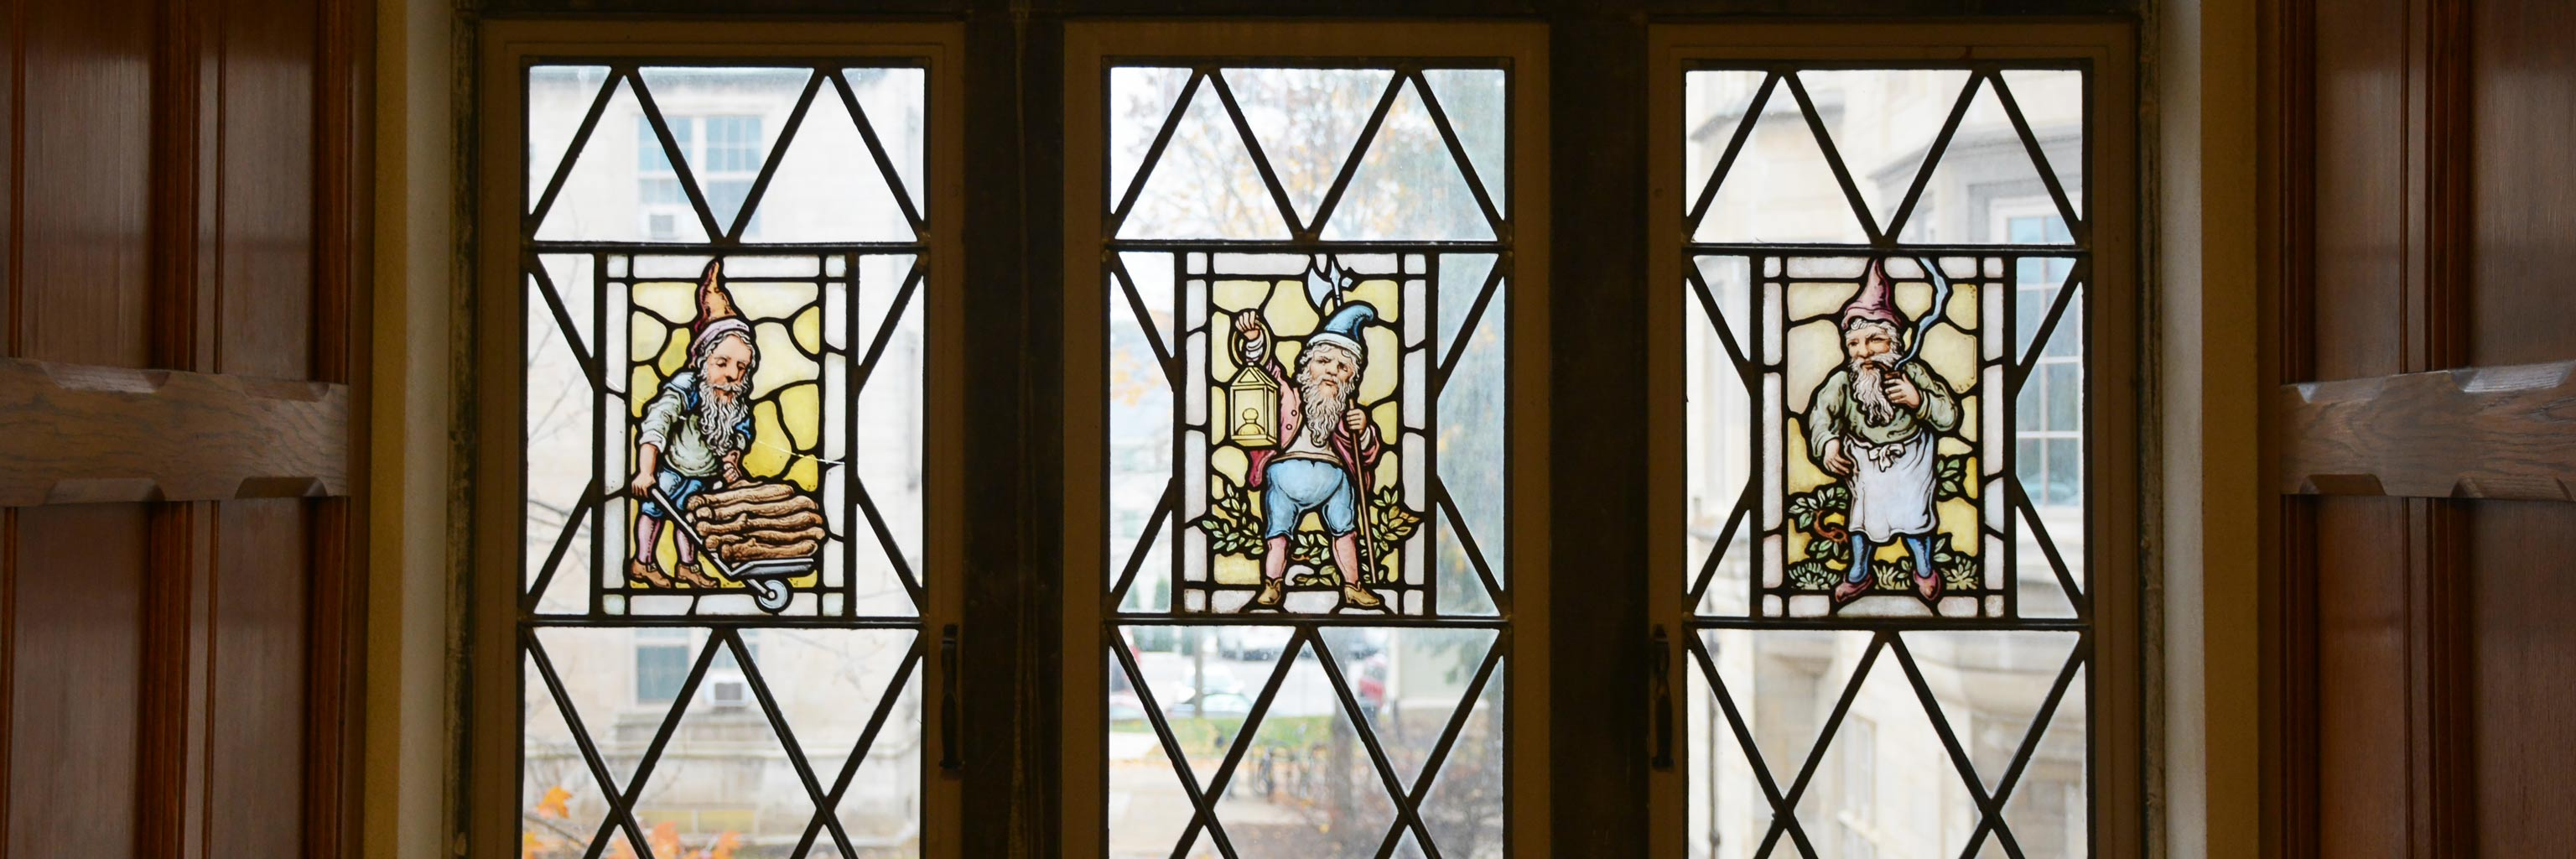 Three stain glass windows side-by-side, each containing an image of a gnome